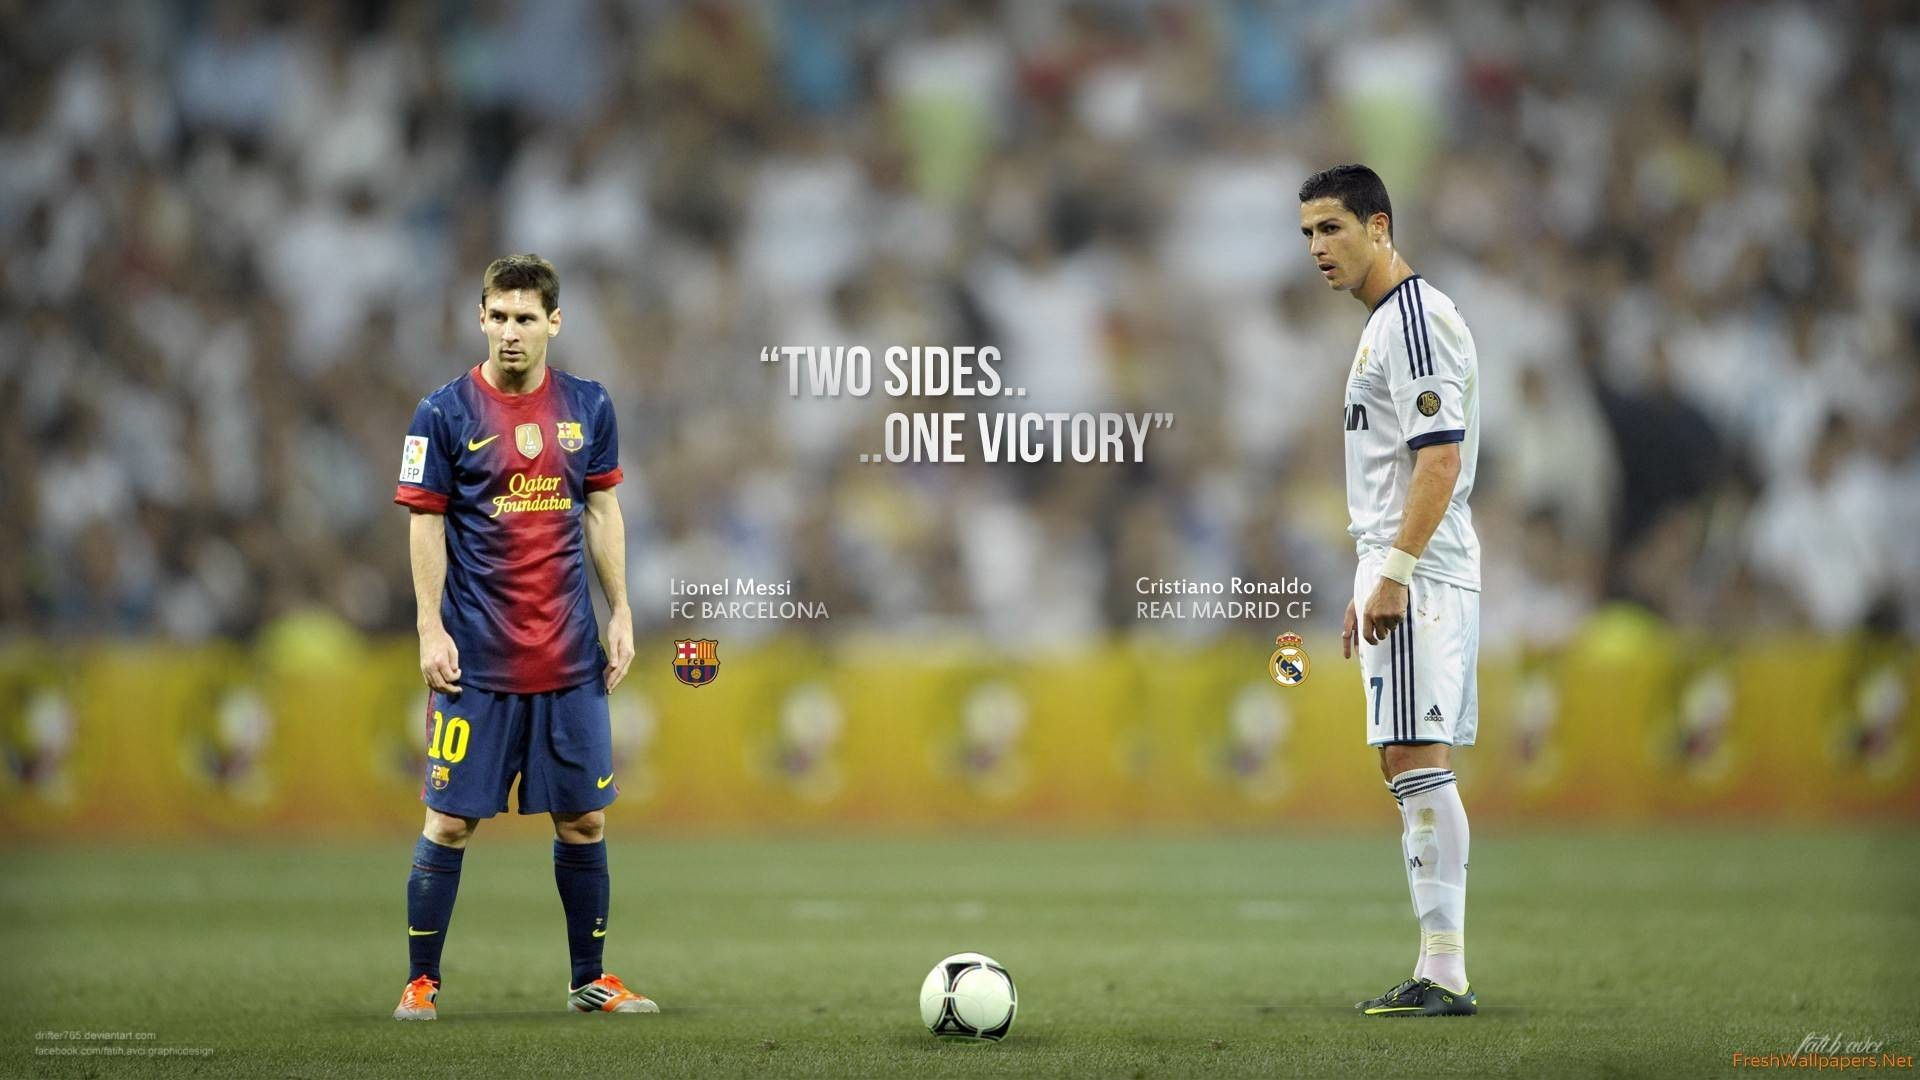 1920x1080 Image for Real Madrid vs Barcelona El Clasico Wallpaper HD 1